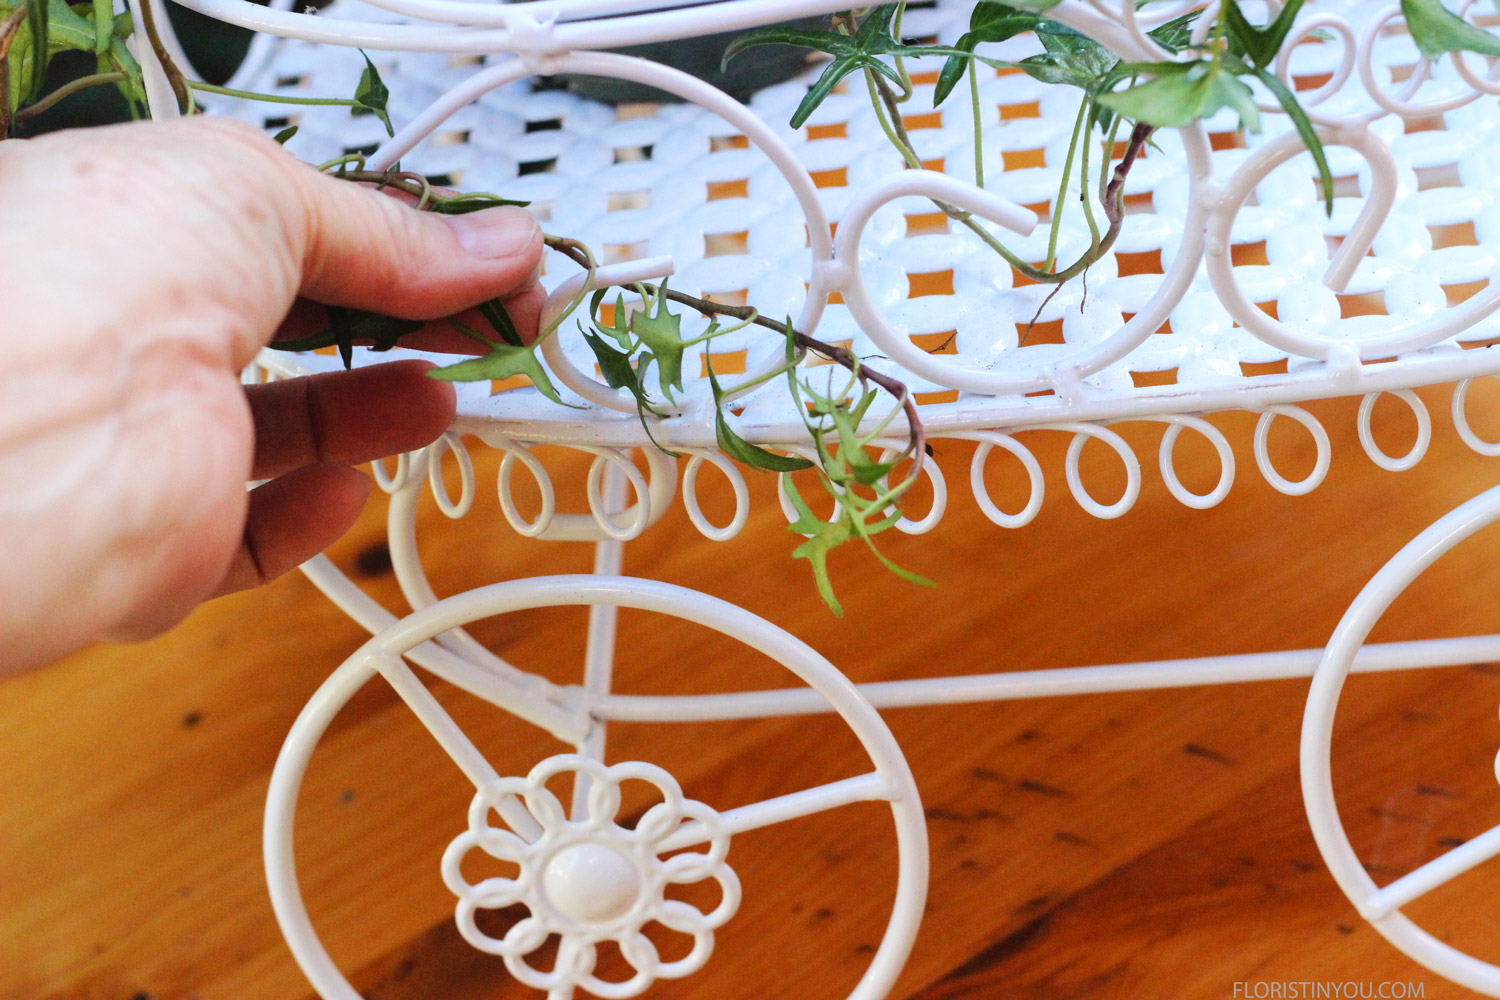 Weave ivy around wire carriage.